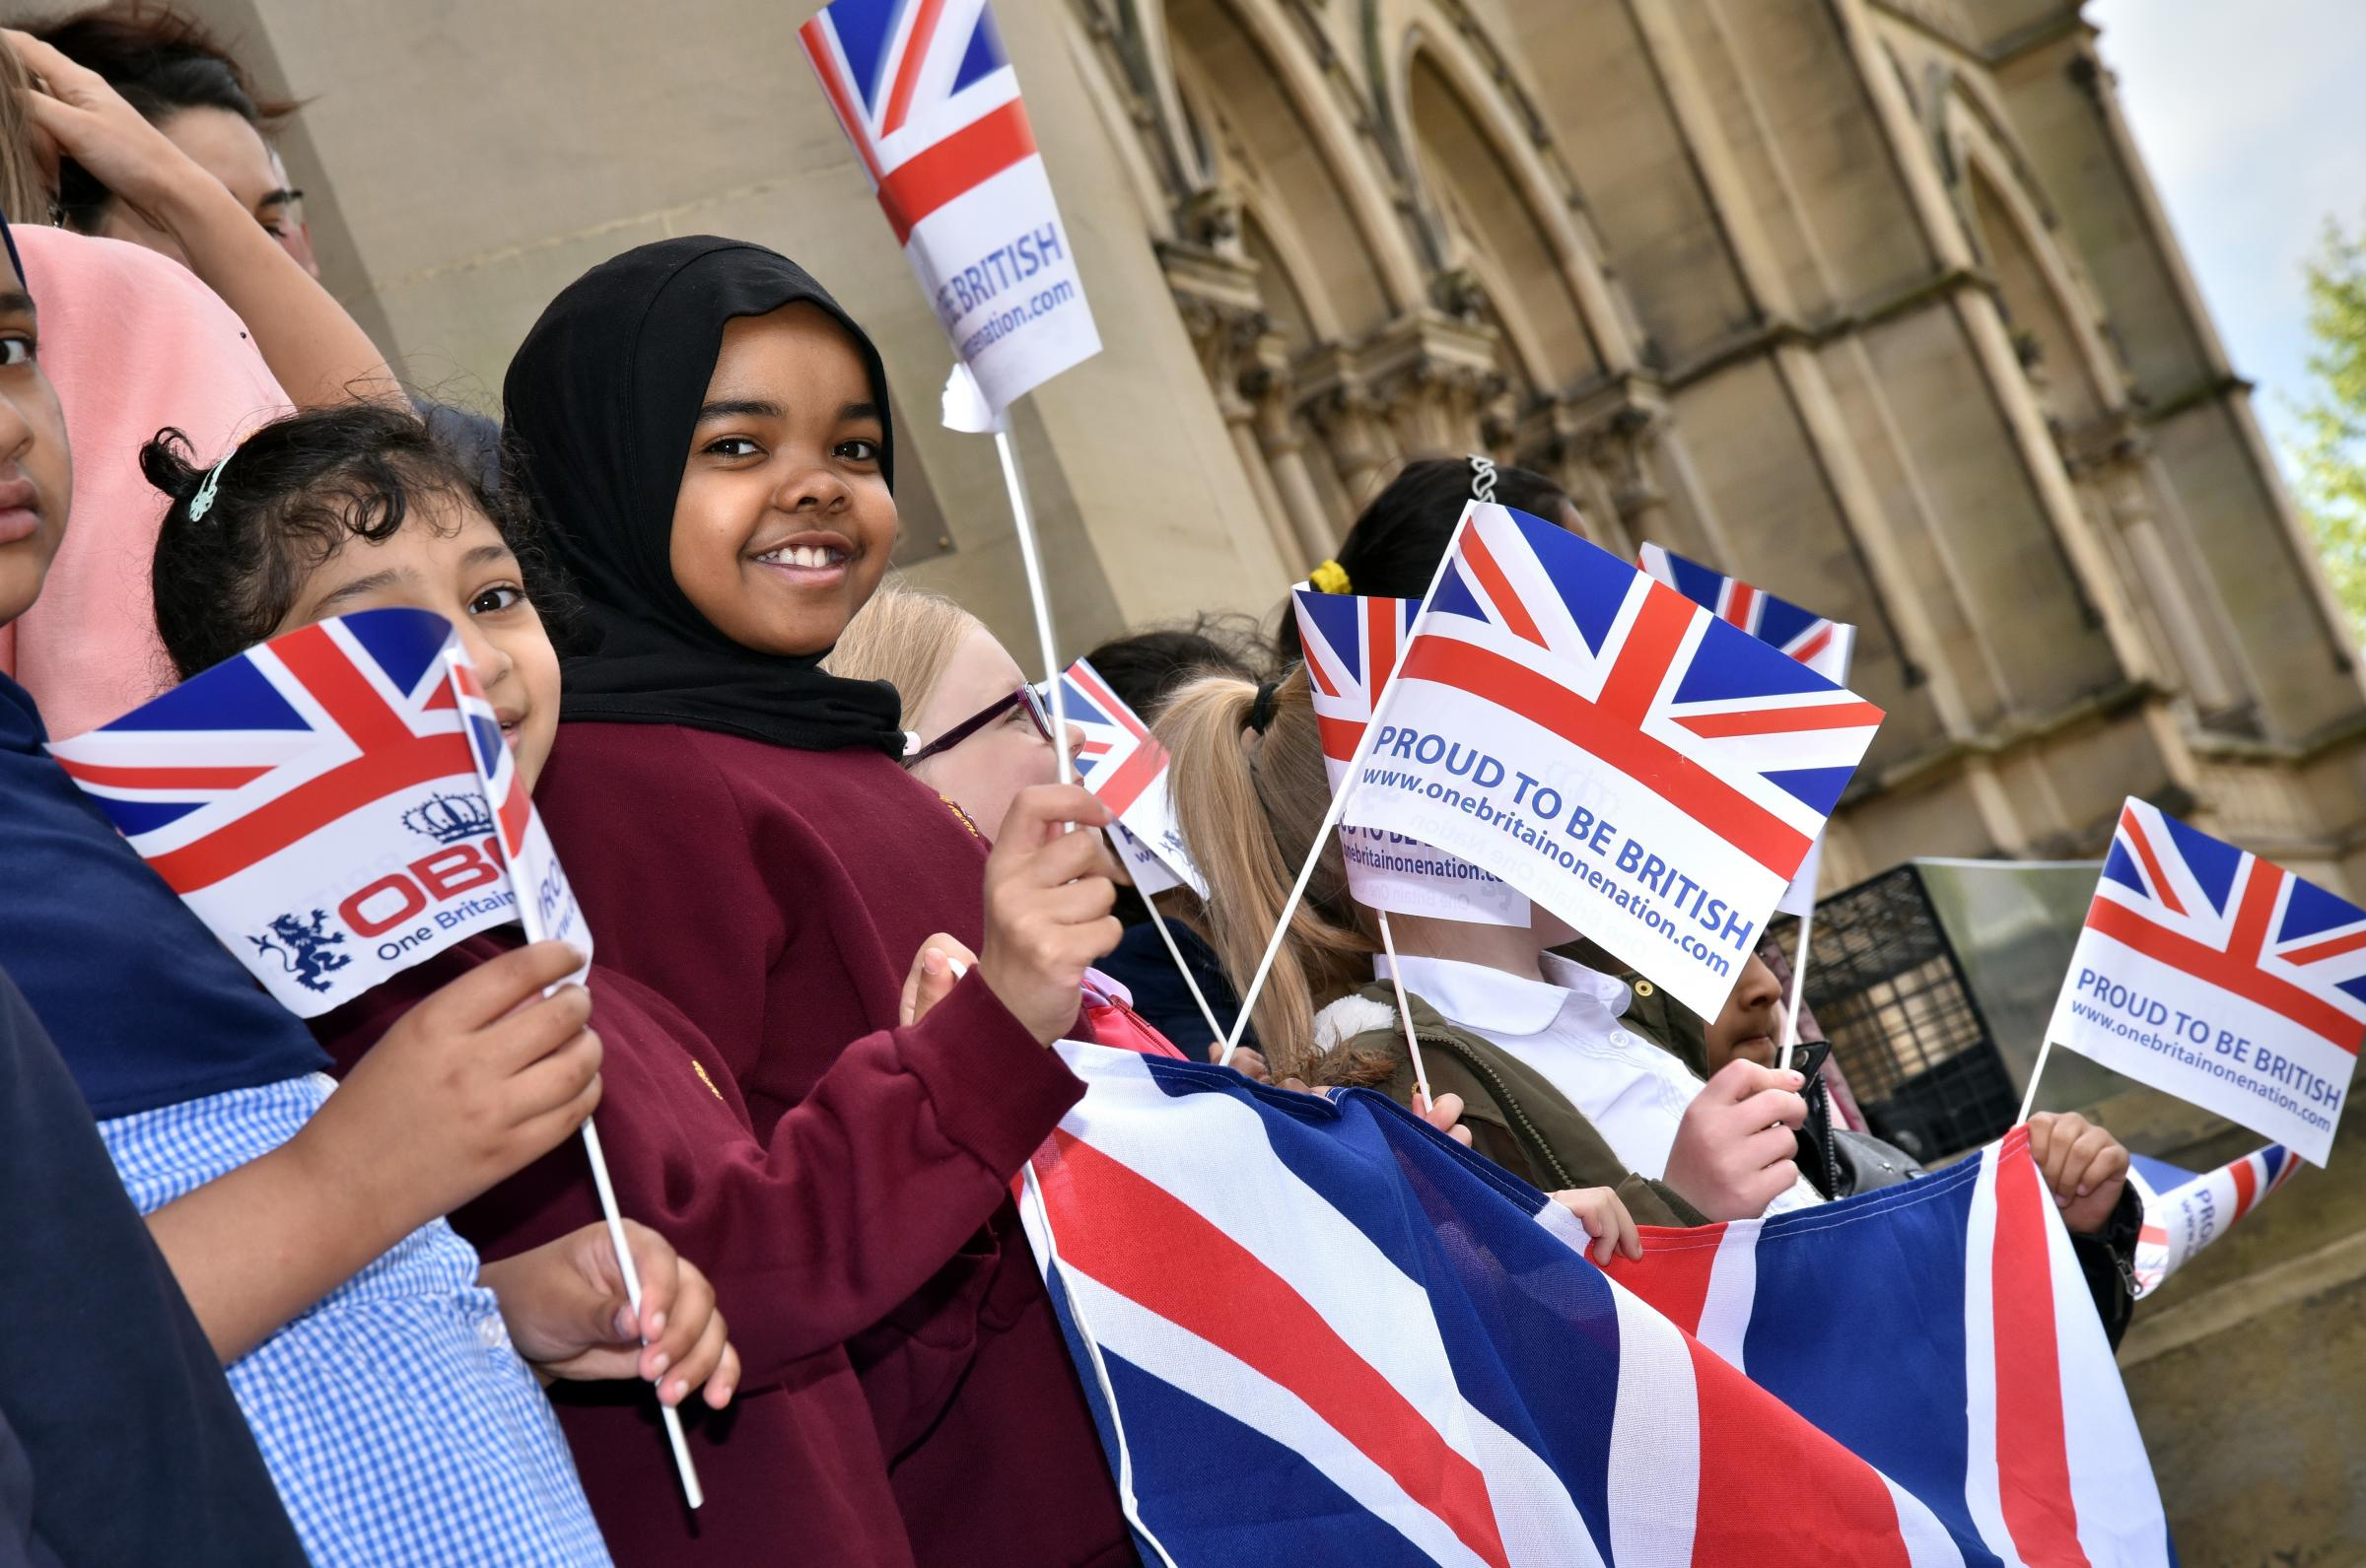 UK Government emails reveal Tory U-turn on 'One Britain One Nation' day